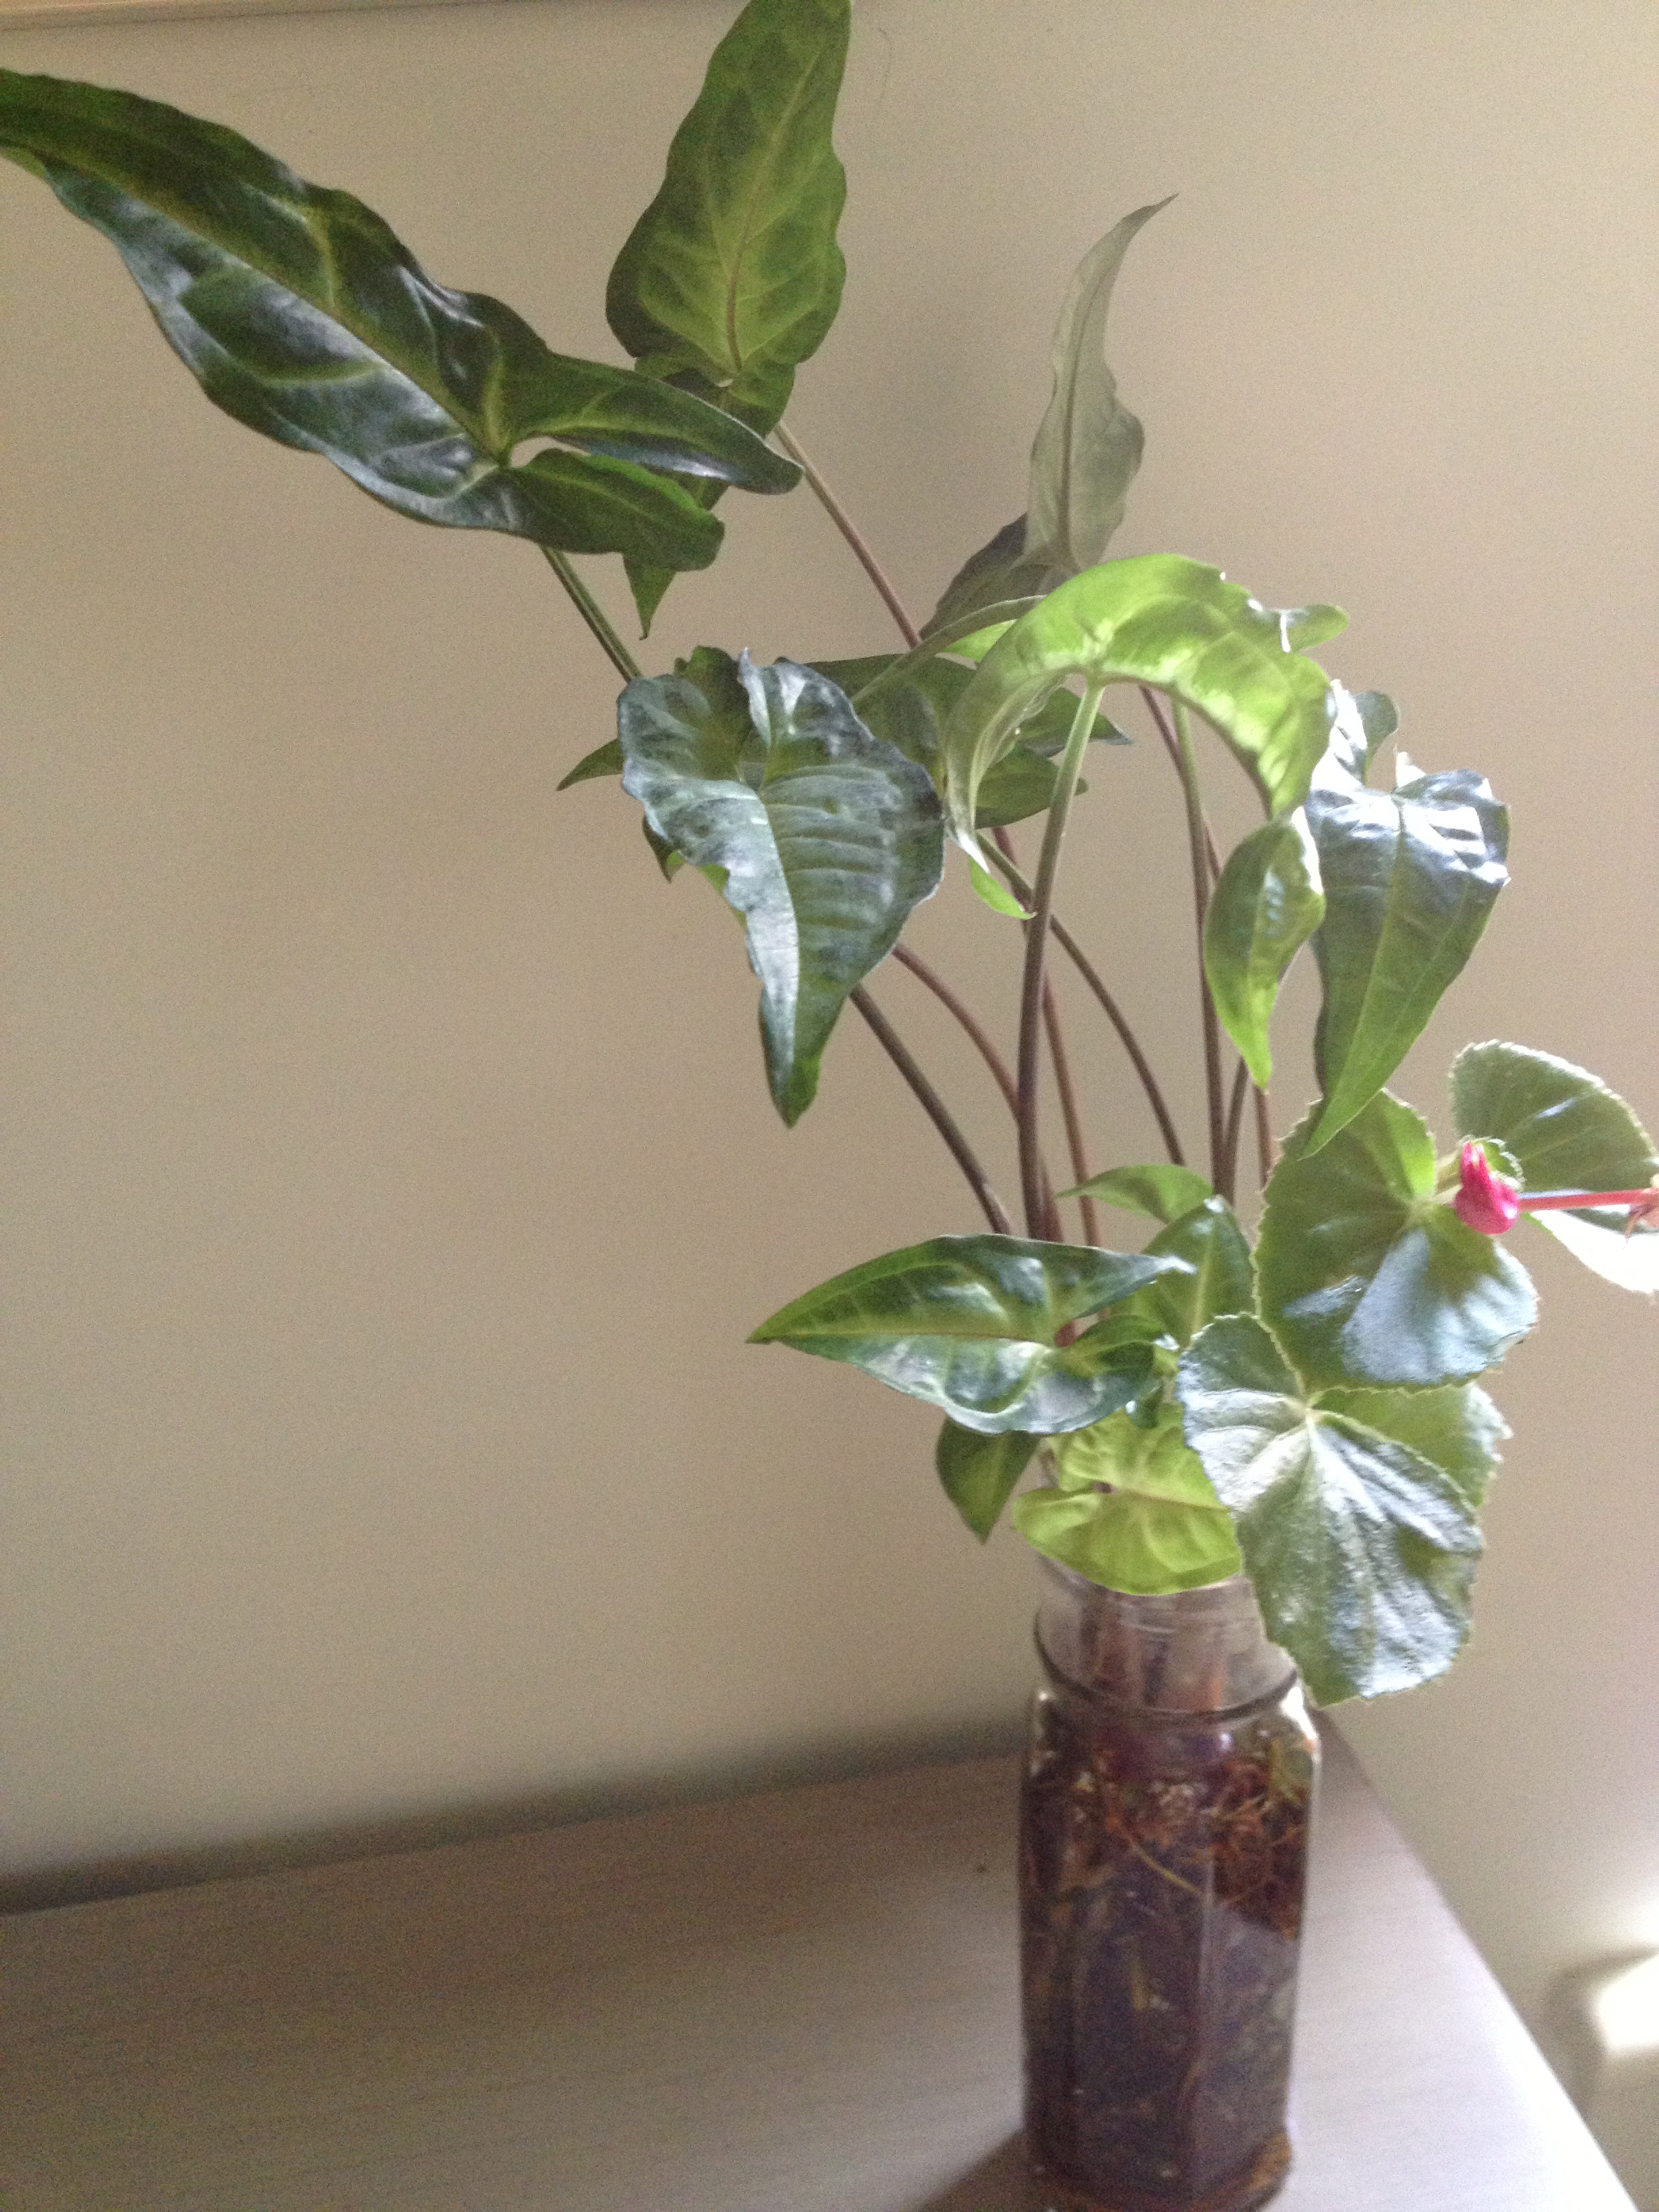 100 low light indoor tree 7 tips for the care and keeping of your plants u2014 - Easy care indoor plants ...